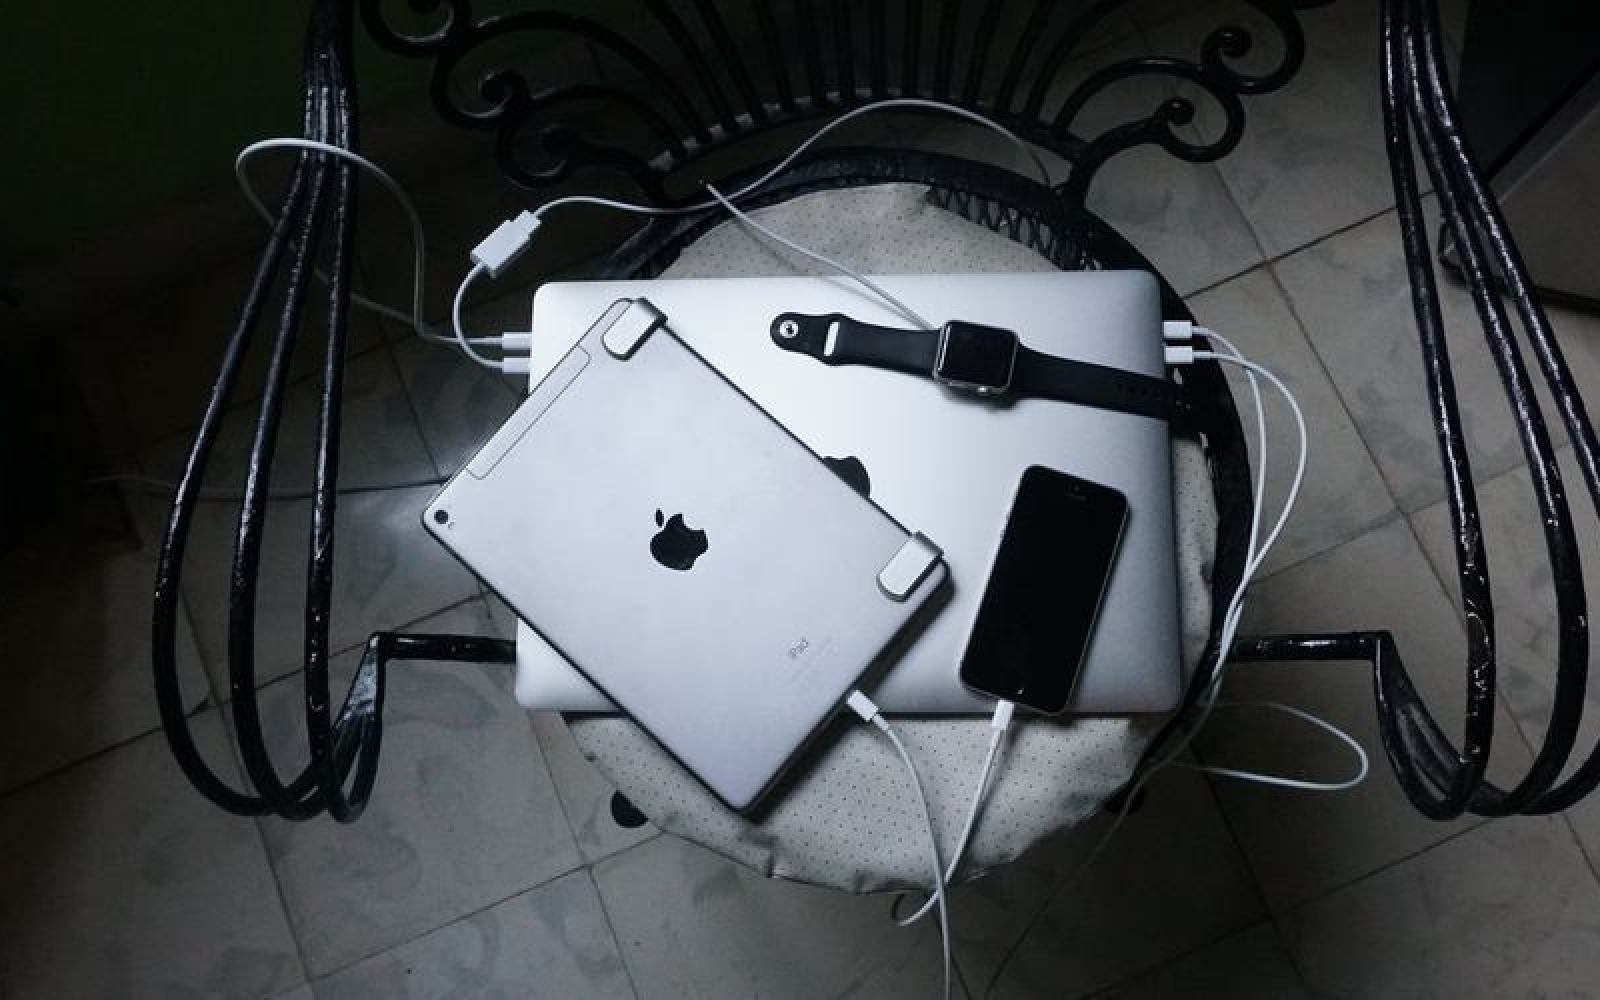 MacBook Pro Diary: Higher power output turned my Mac into a charging hub for my holiday